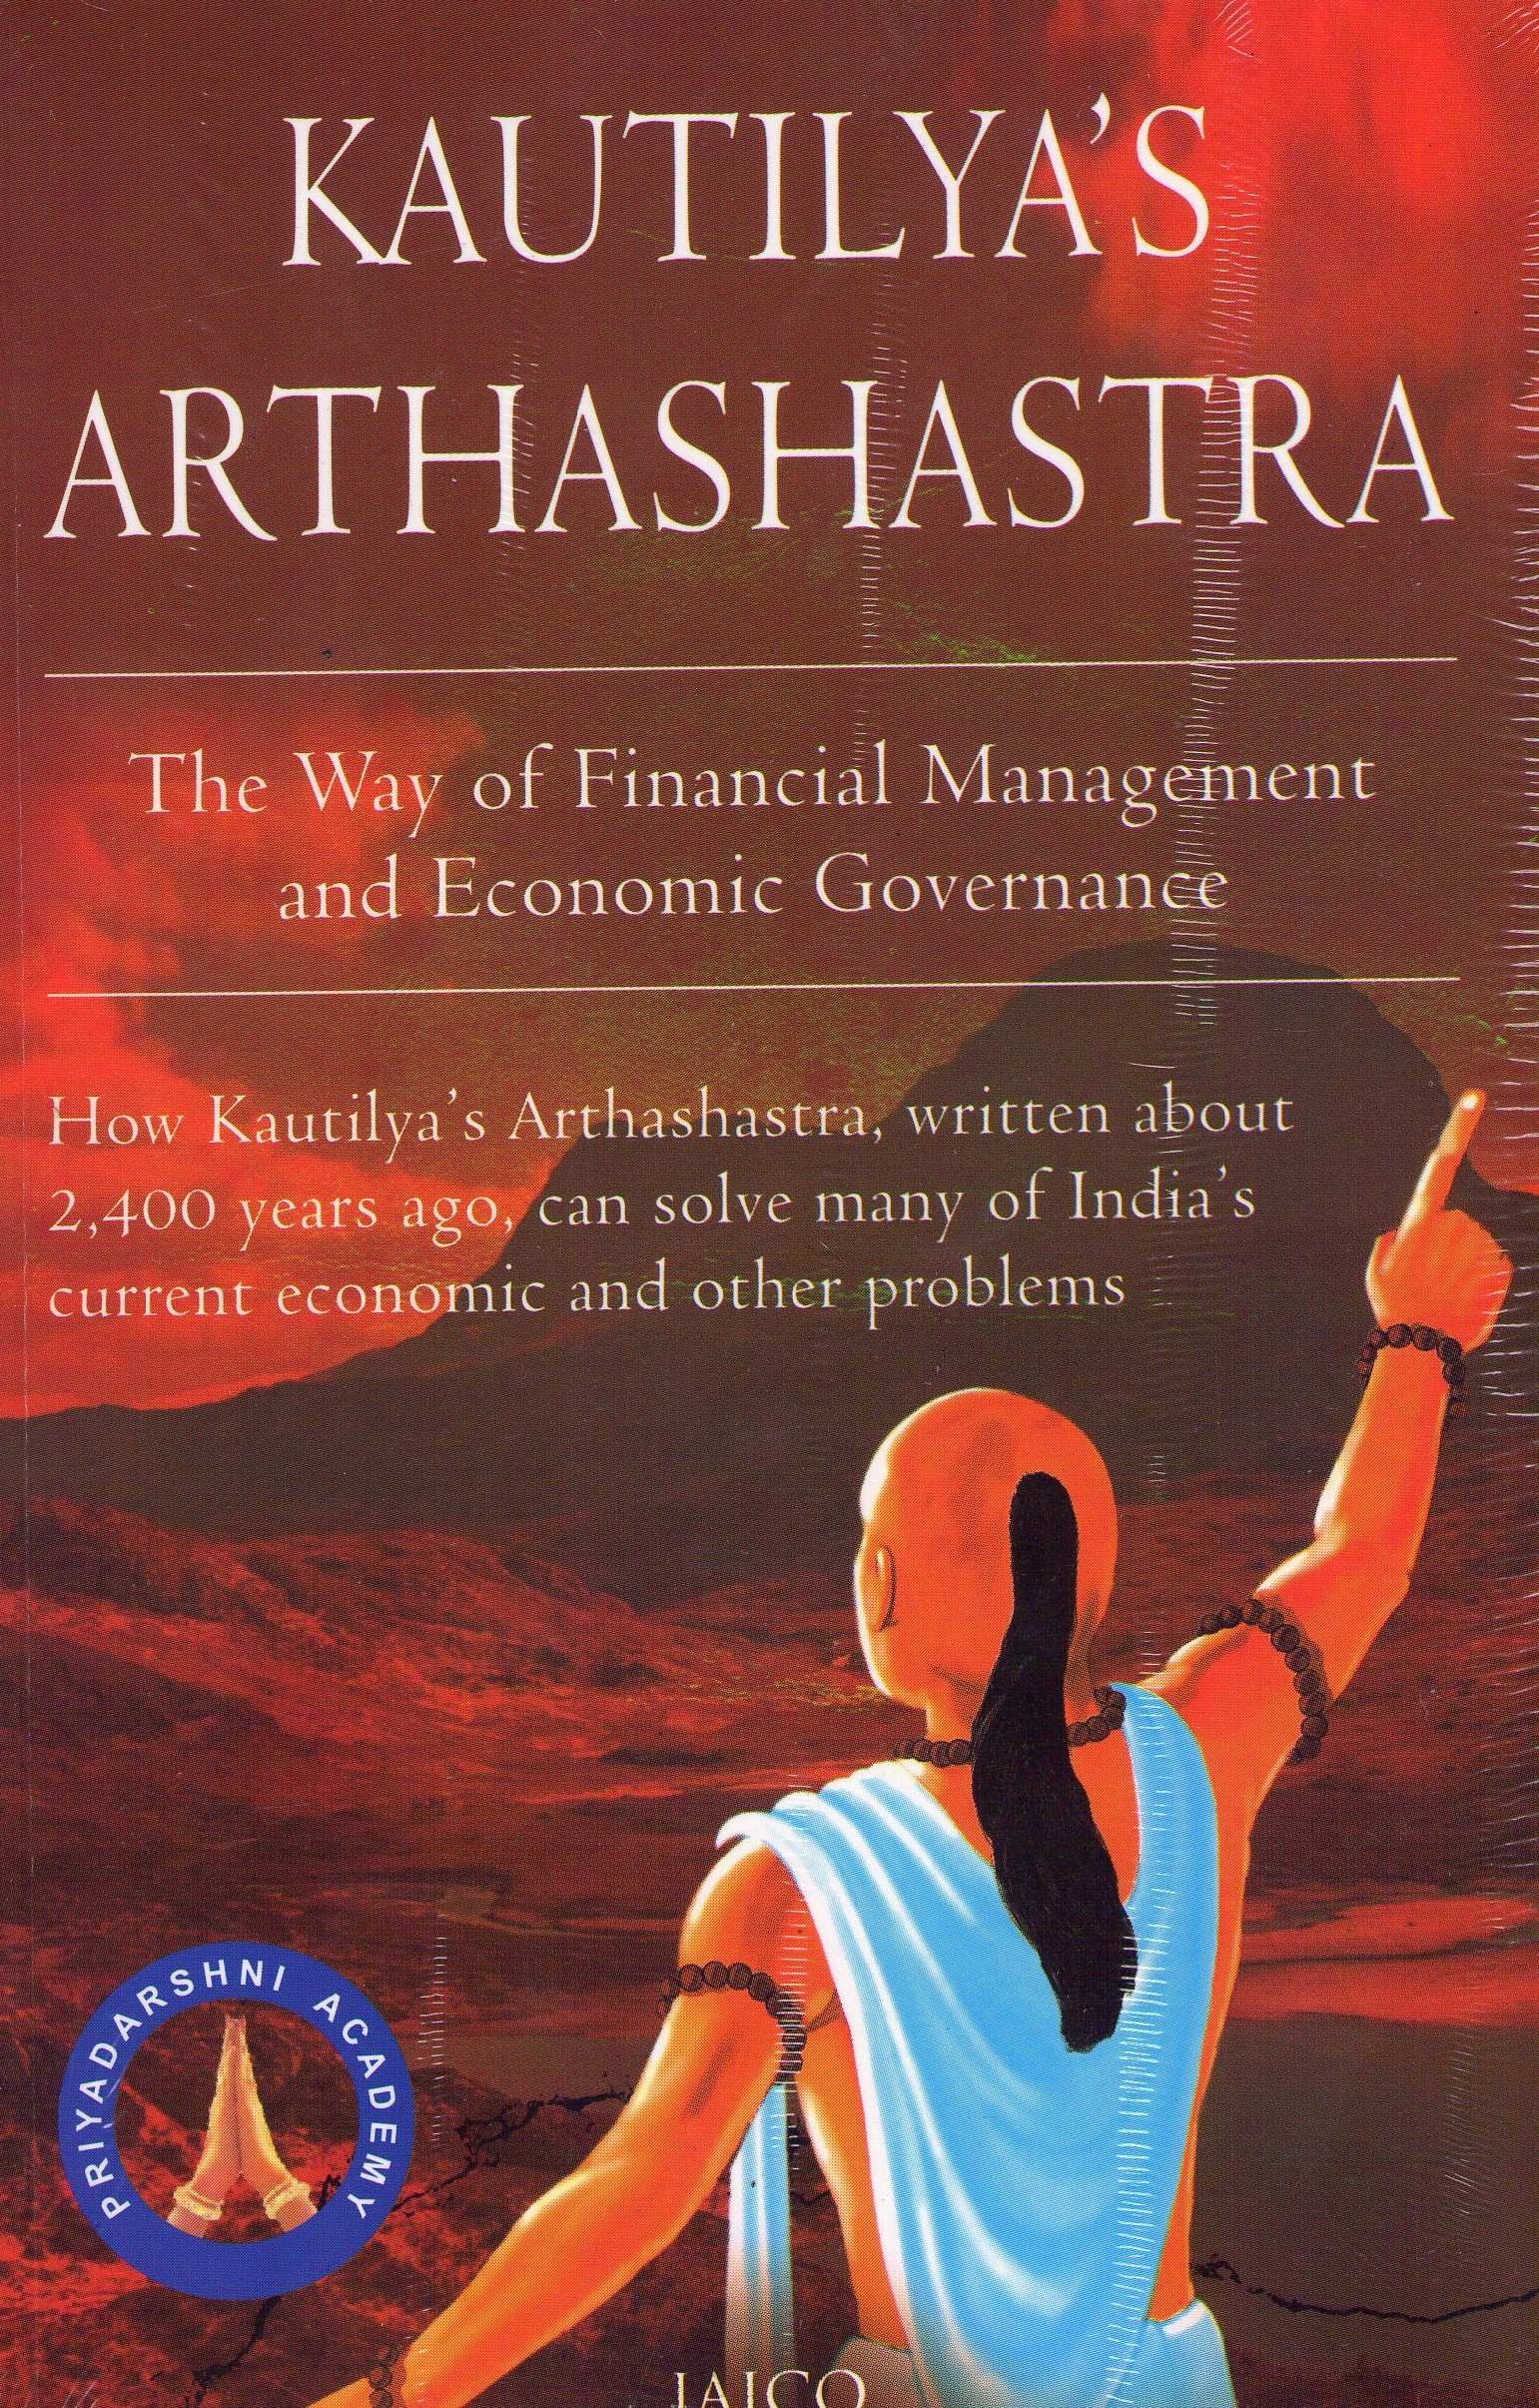 arthashastra mainly deals with